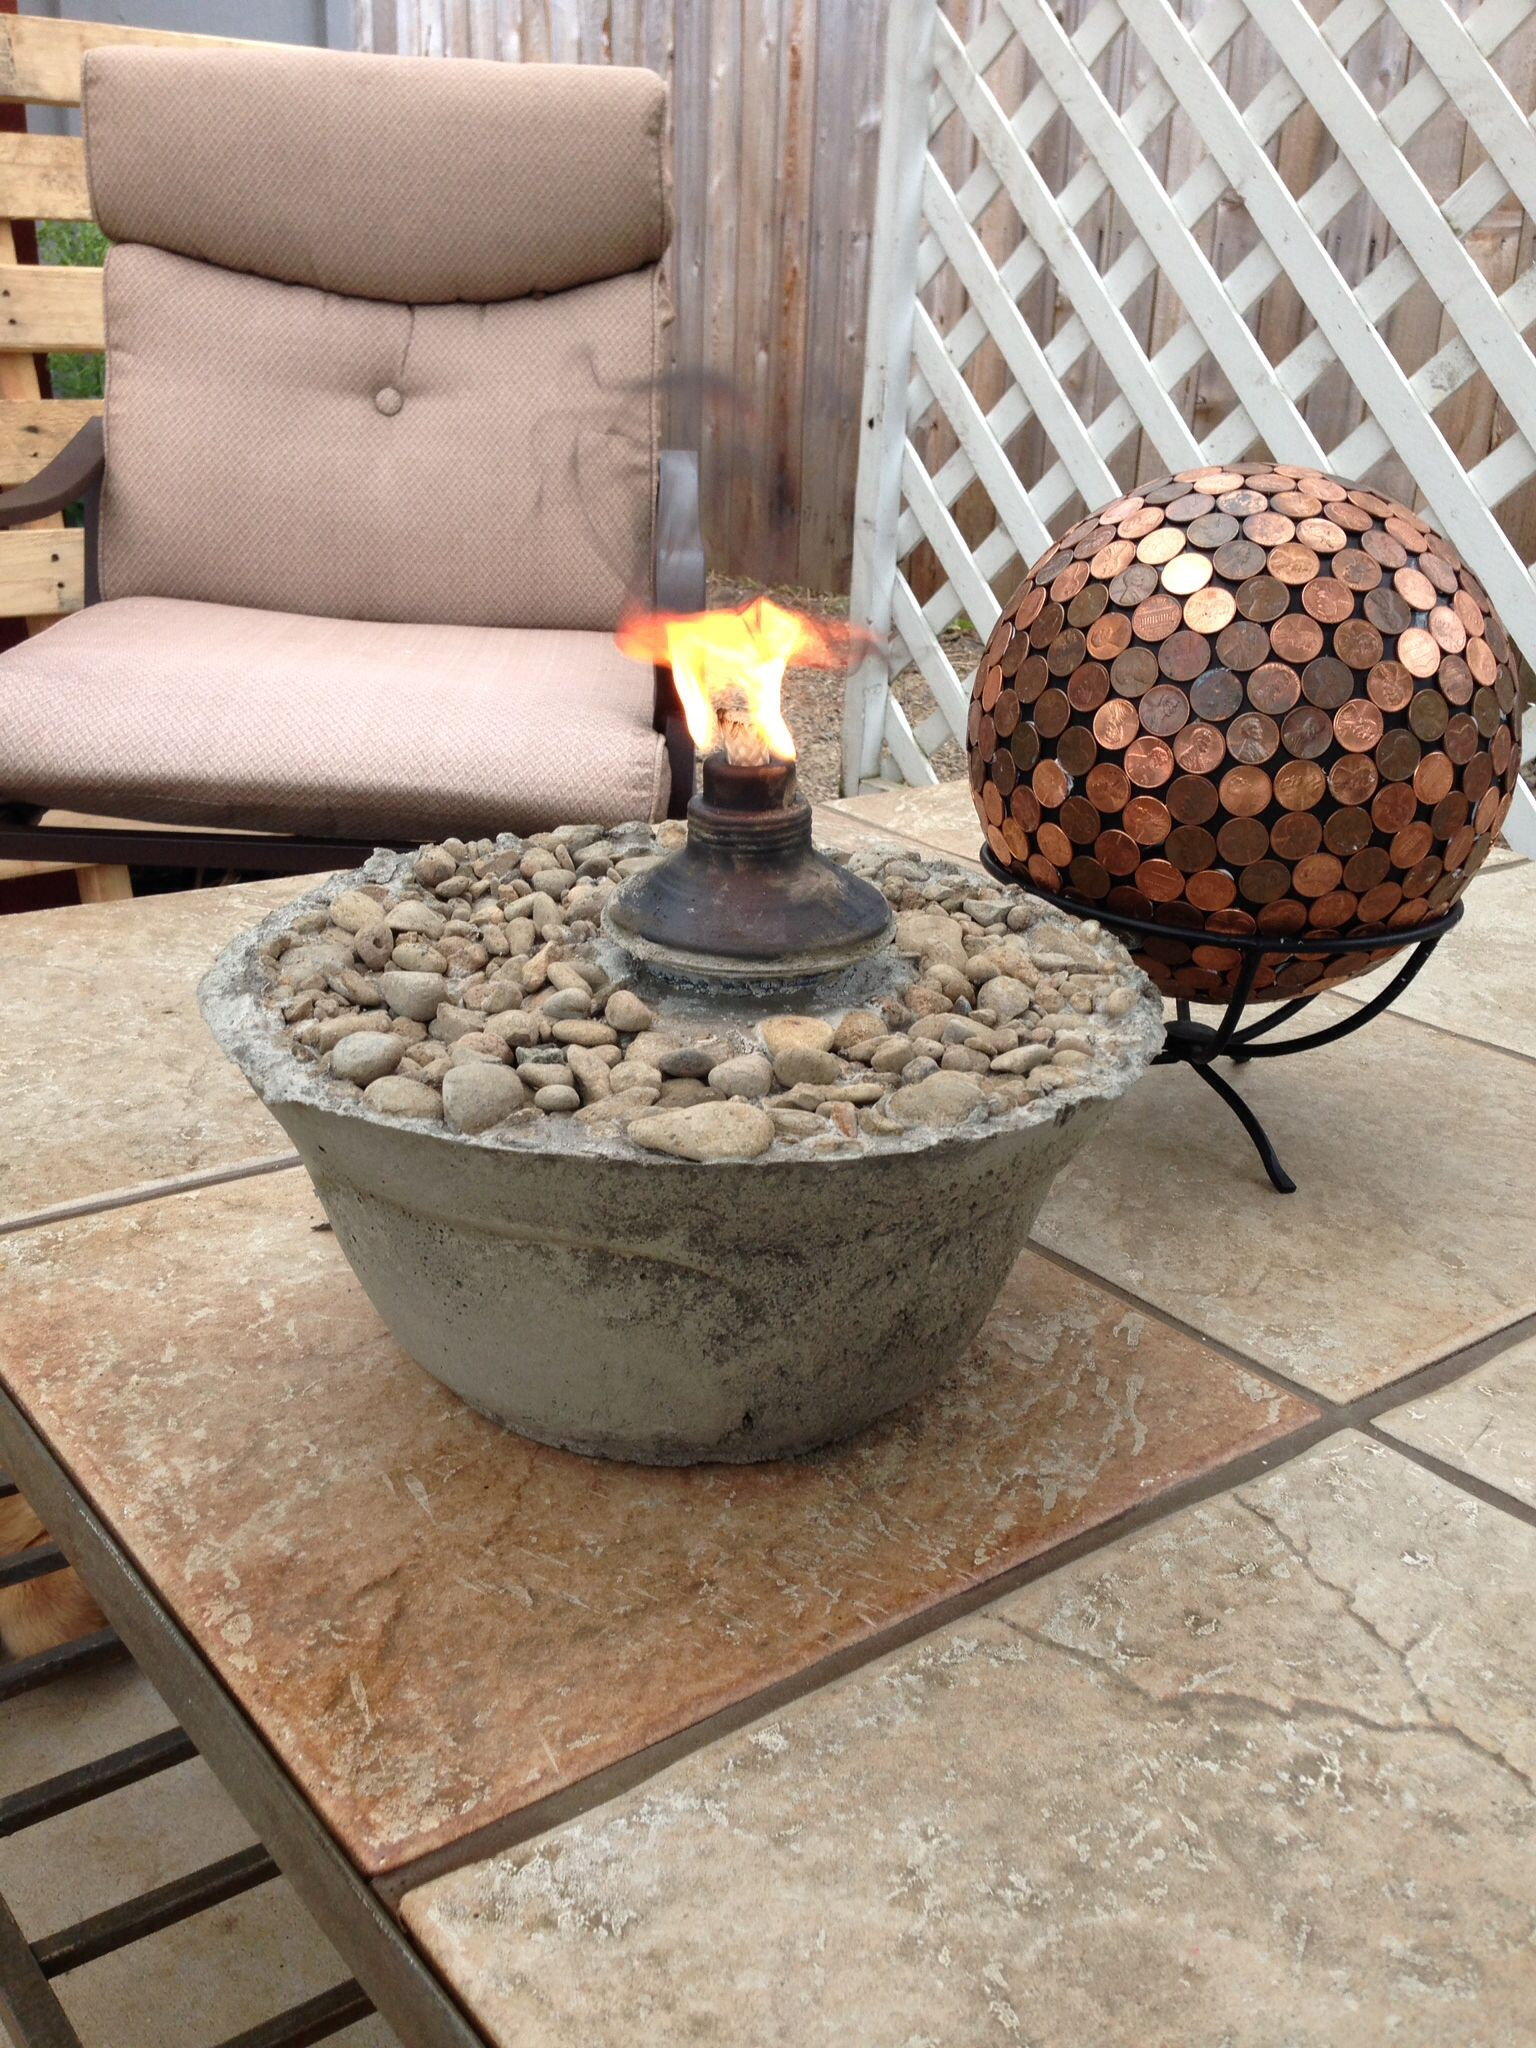 Mini Tabletop Fire Pit Old Or Inexpensive Bowl Coat Bowl Tiki Torch With Pam Fill With Cement Coat The Top Tabletop Fire Bowl Fire Pit Outdoor Fire Pit